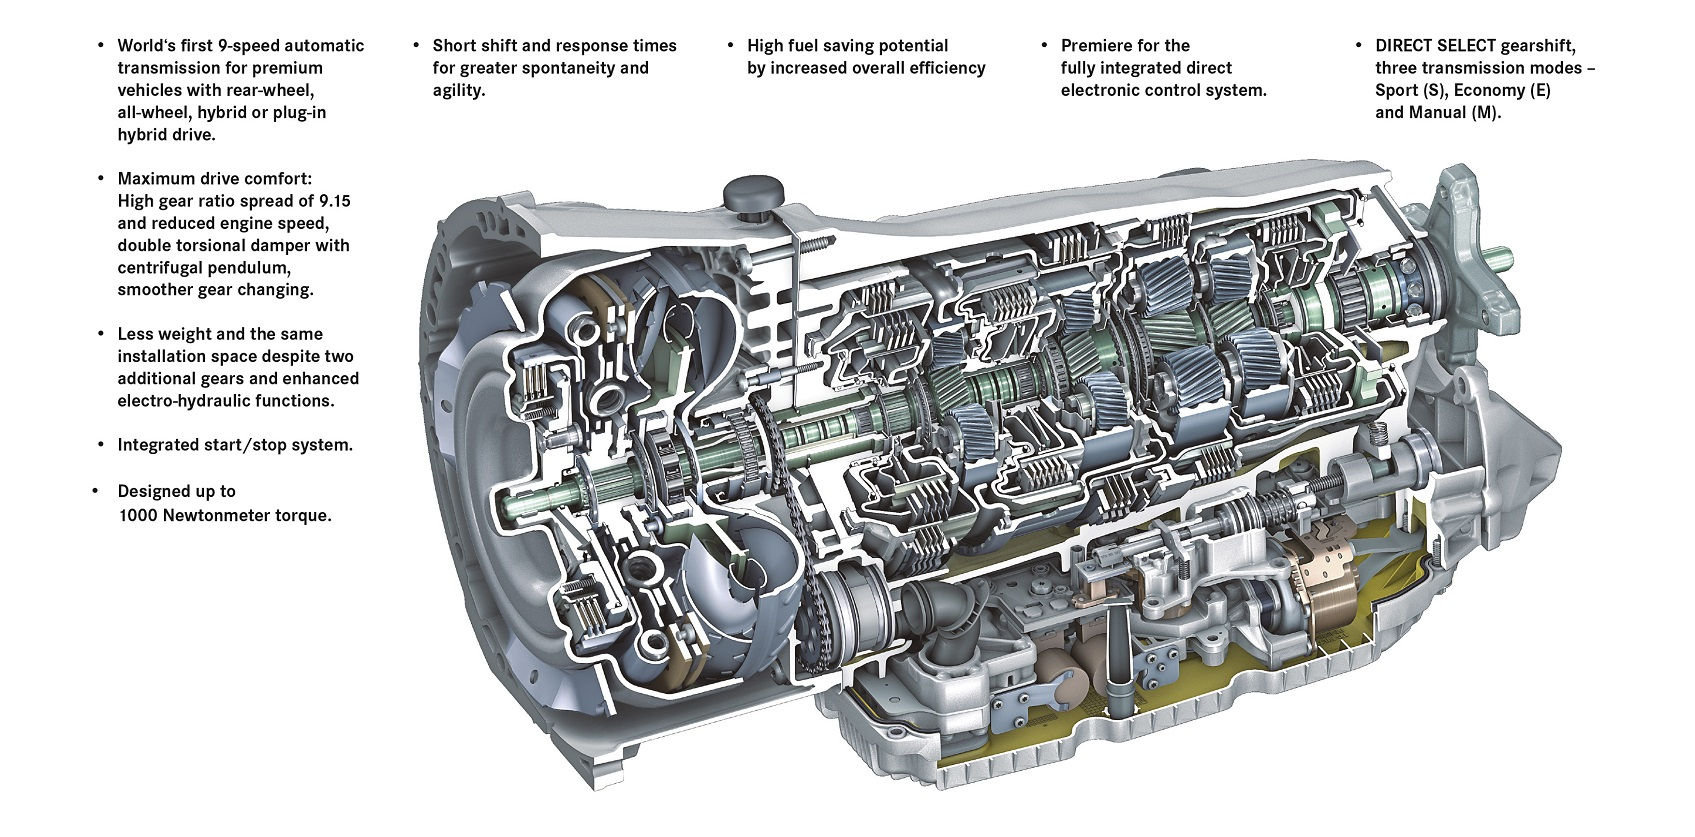 the 9g tronic automatic transmission by mercedes rh car engineer com